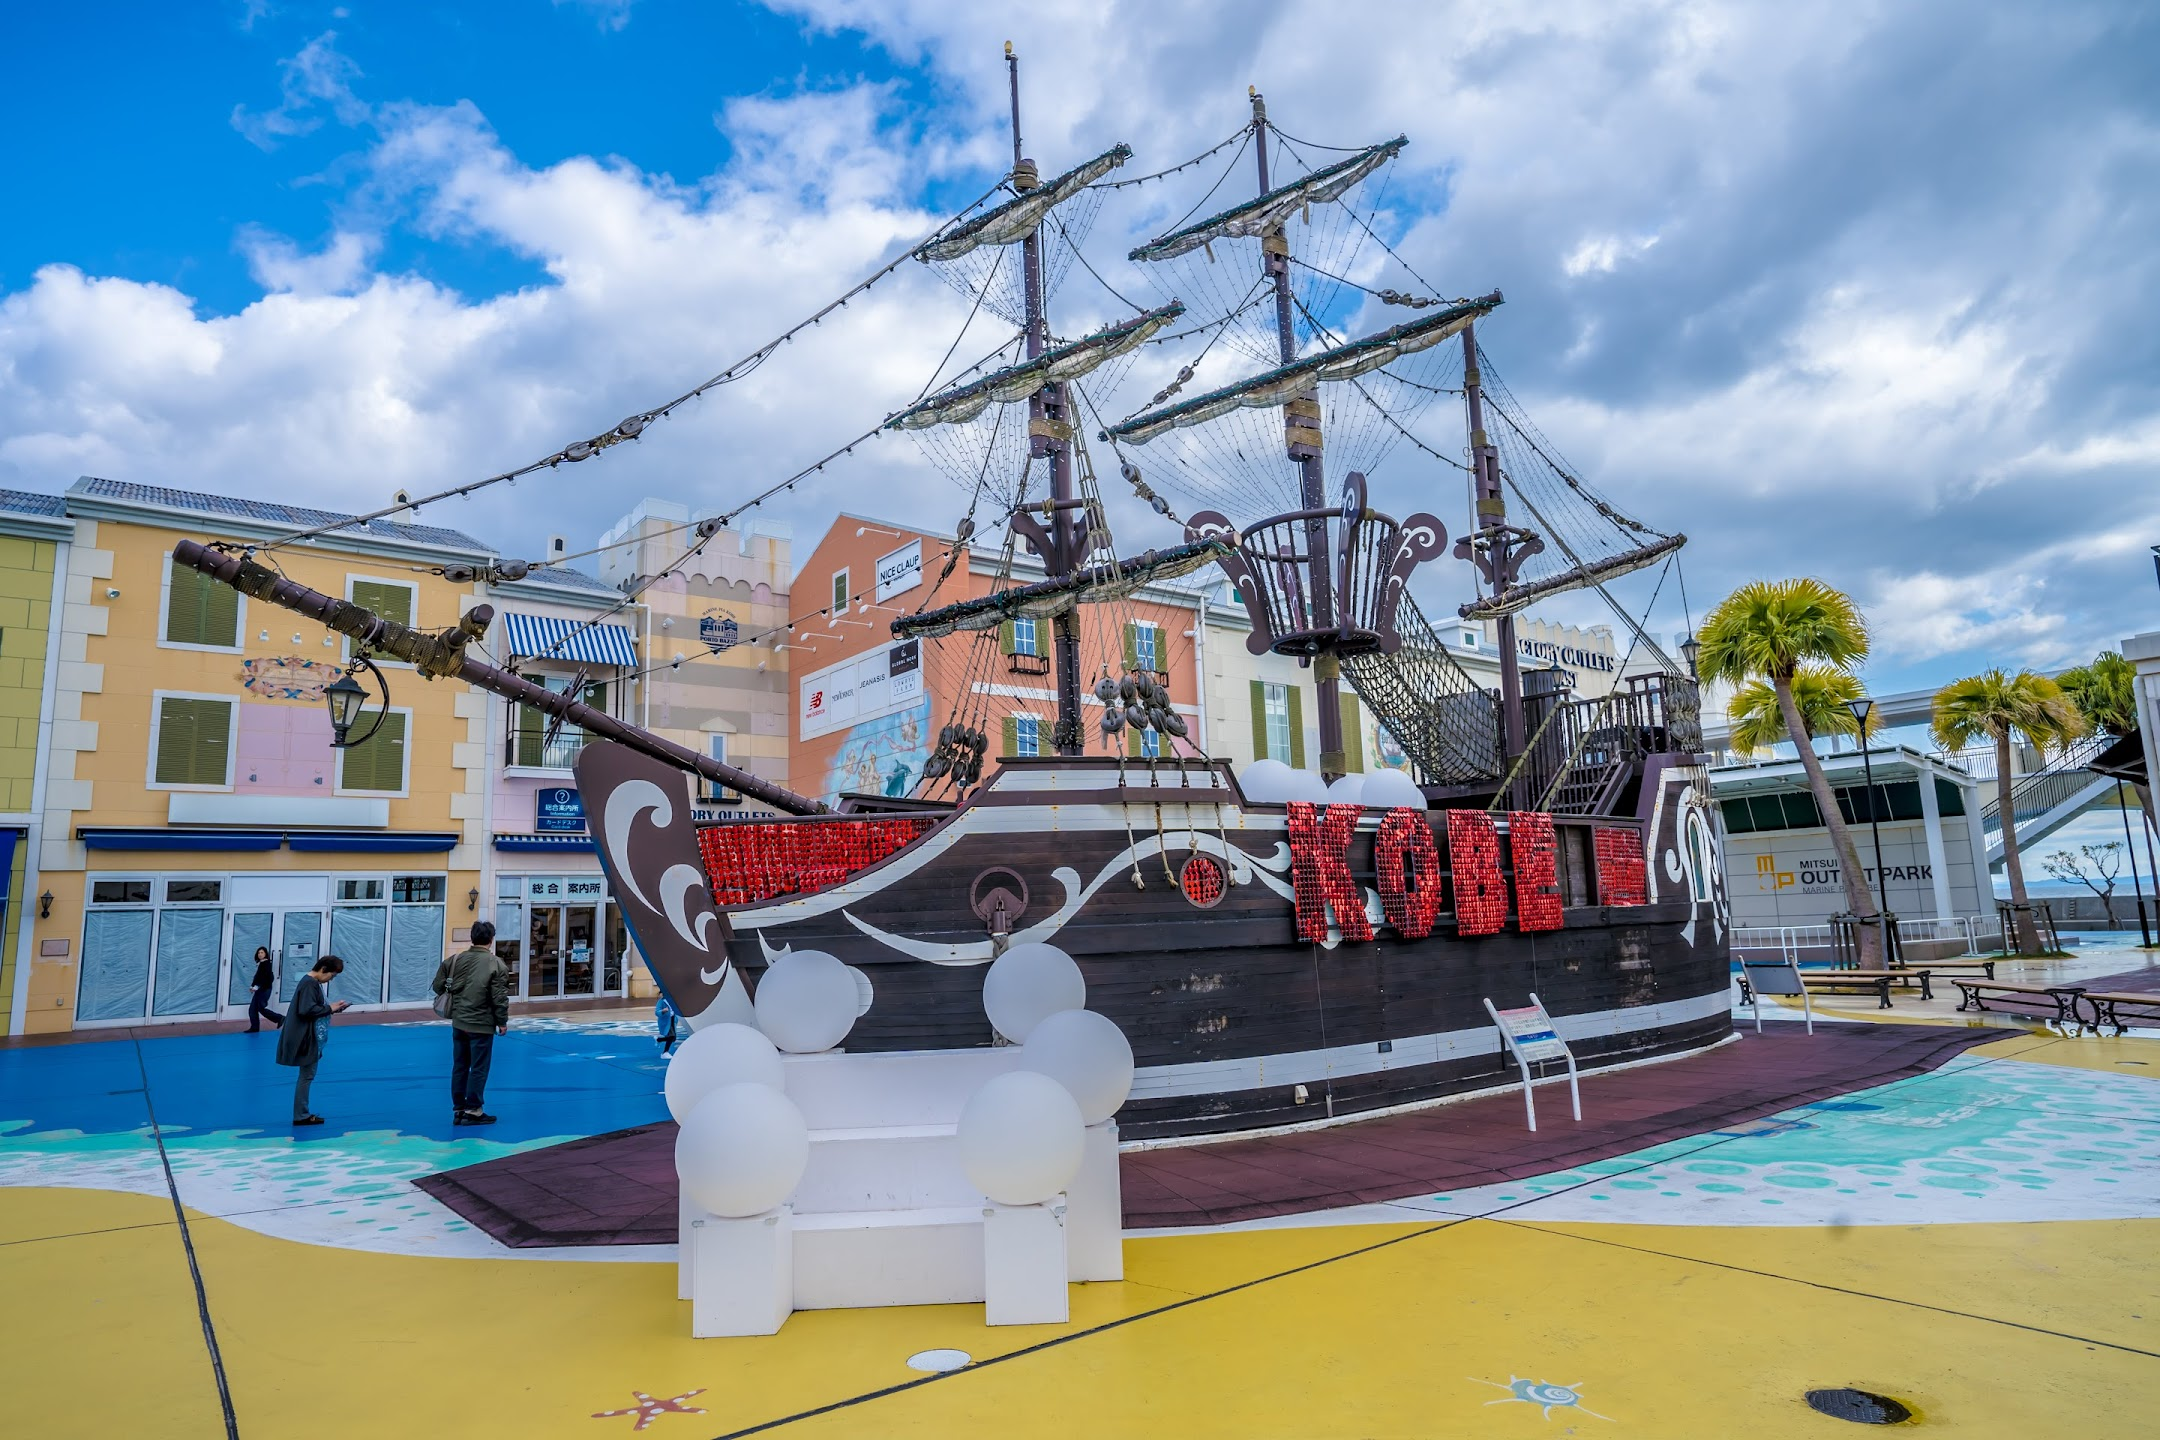 Mitsui Outlet Park Marine Pia Kobe pirate ship1